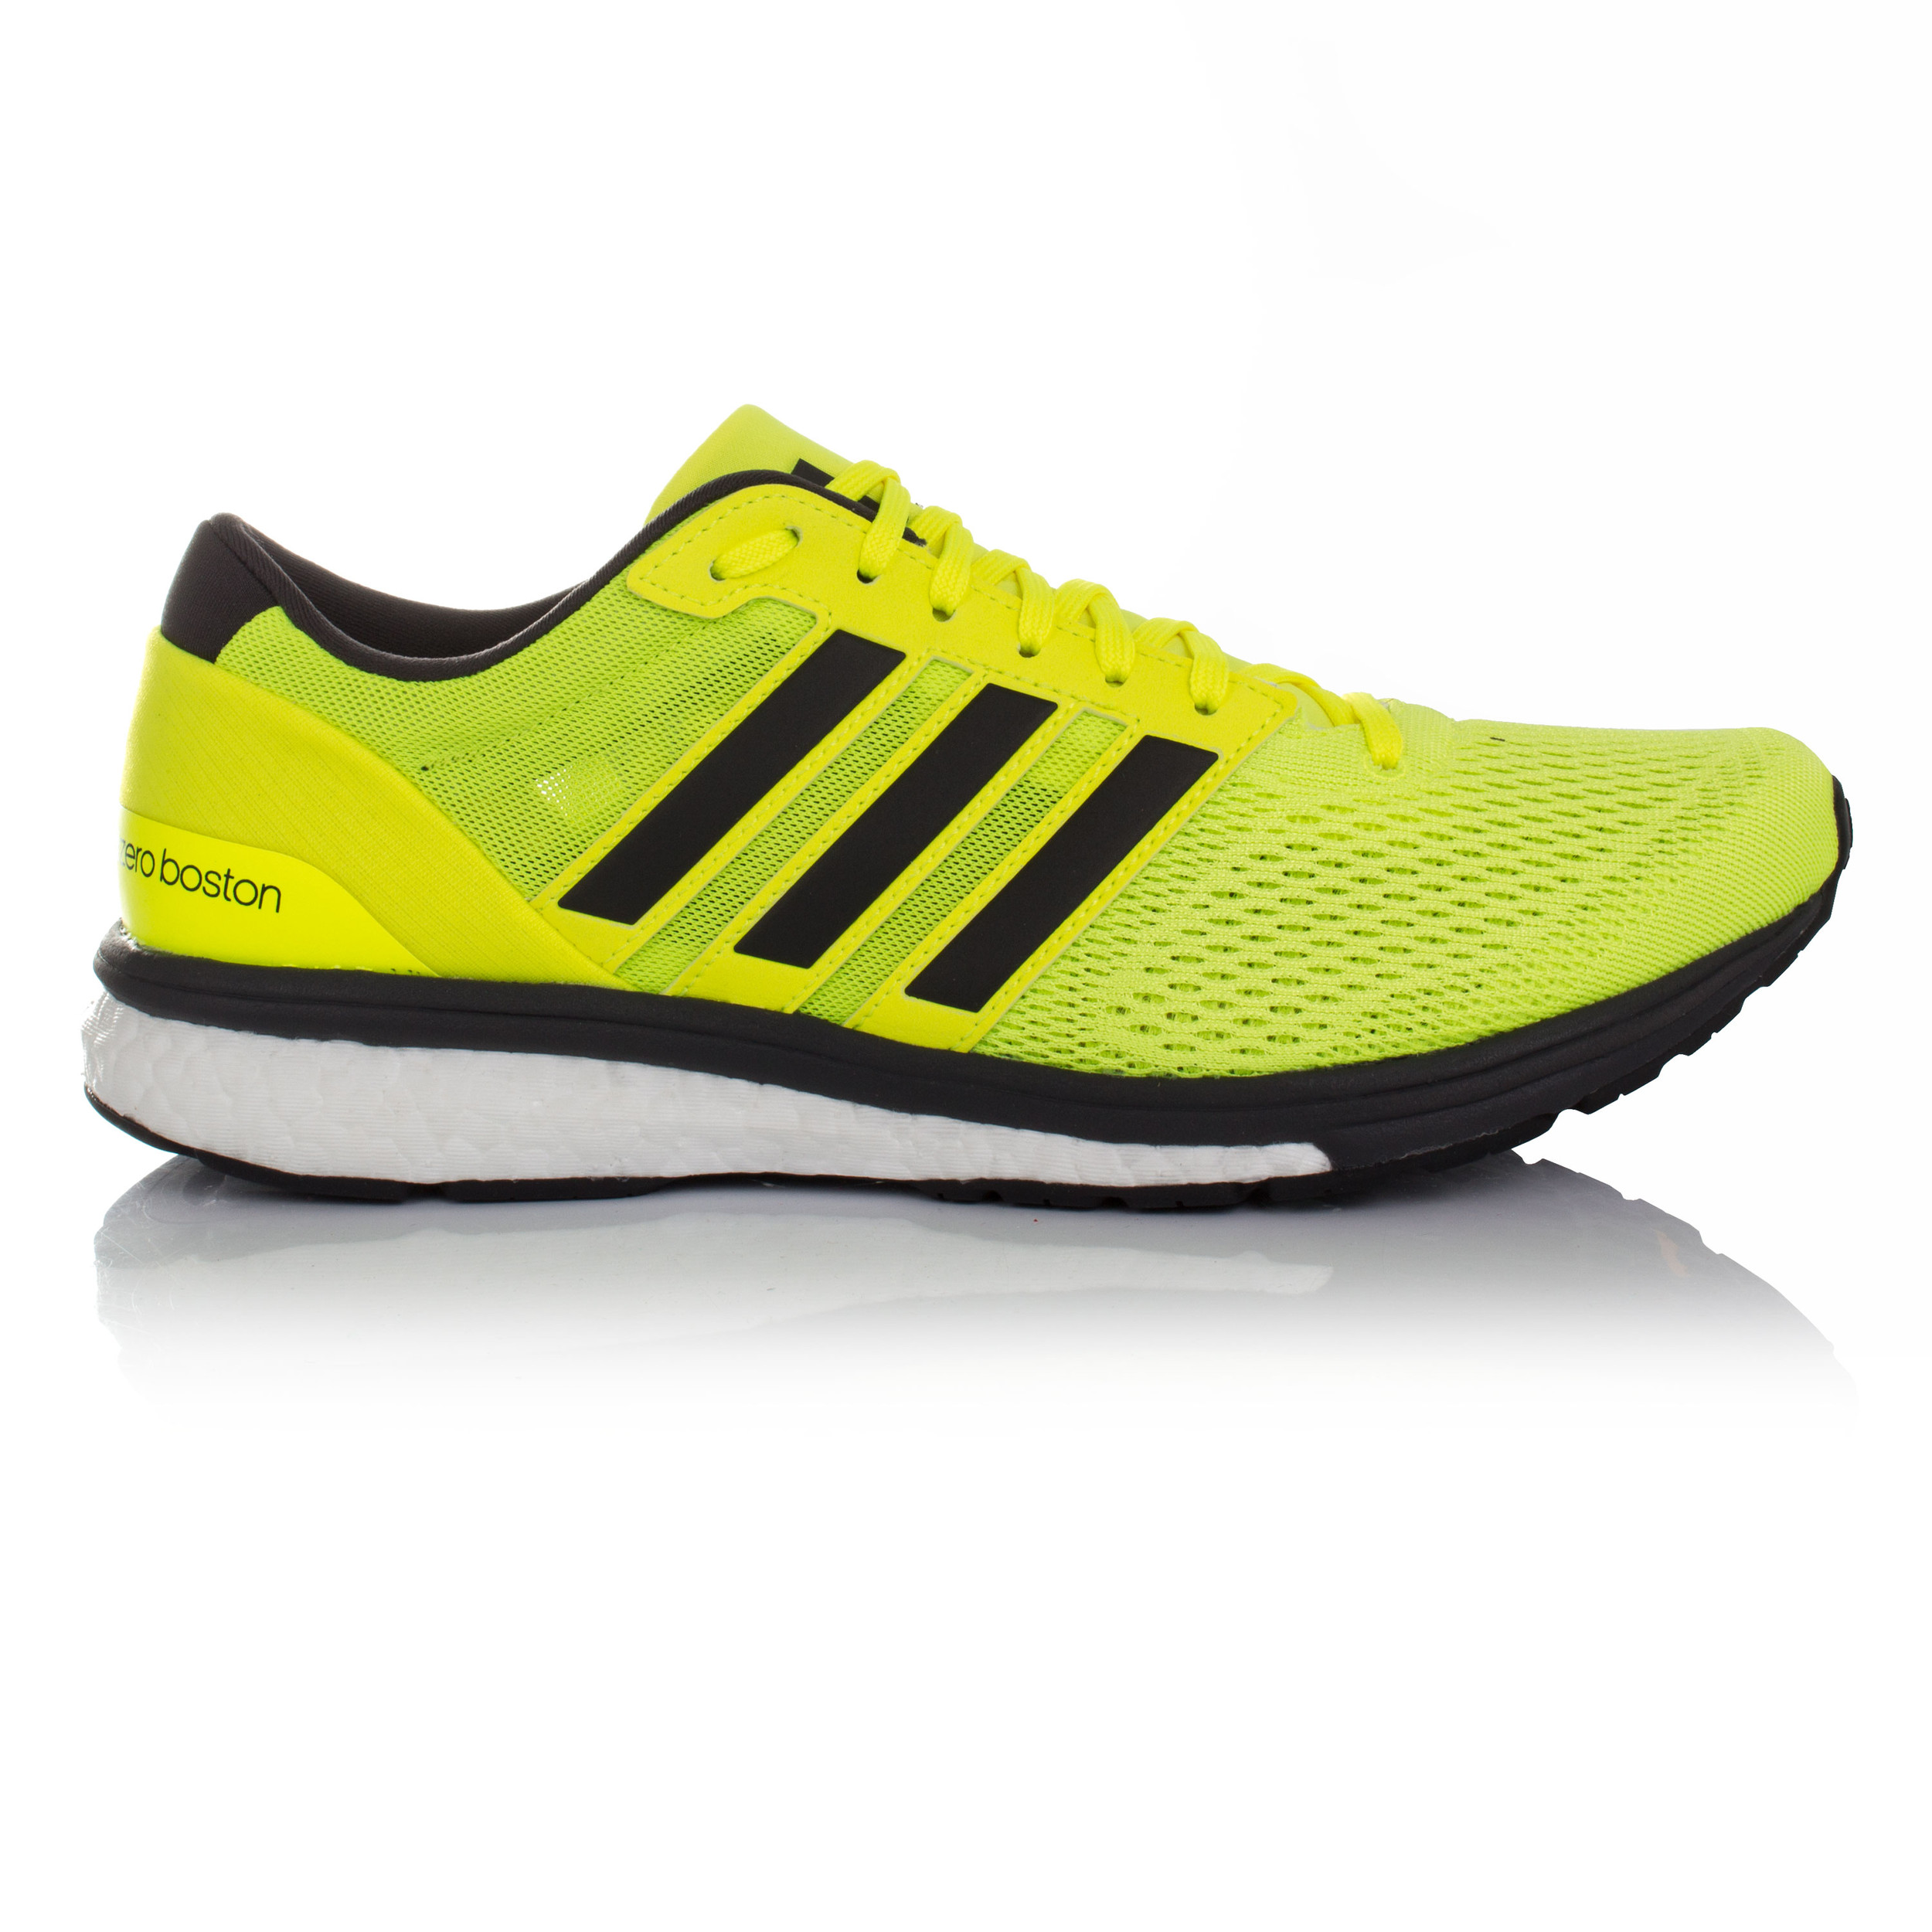 Adizero Running Shoes